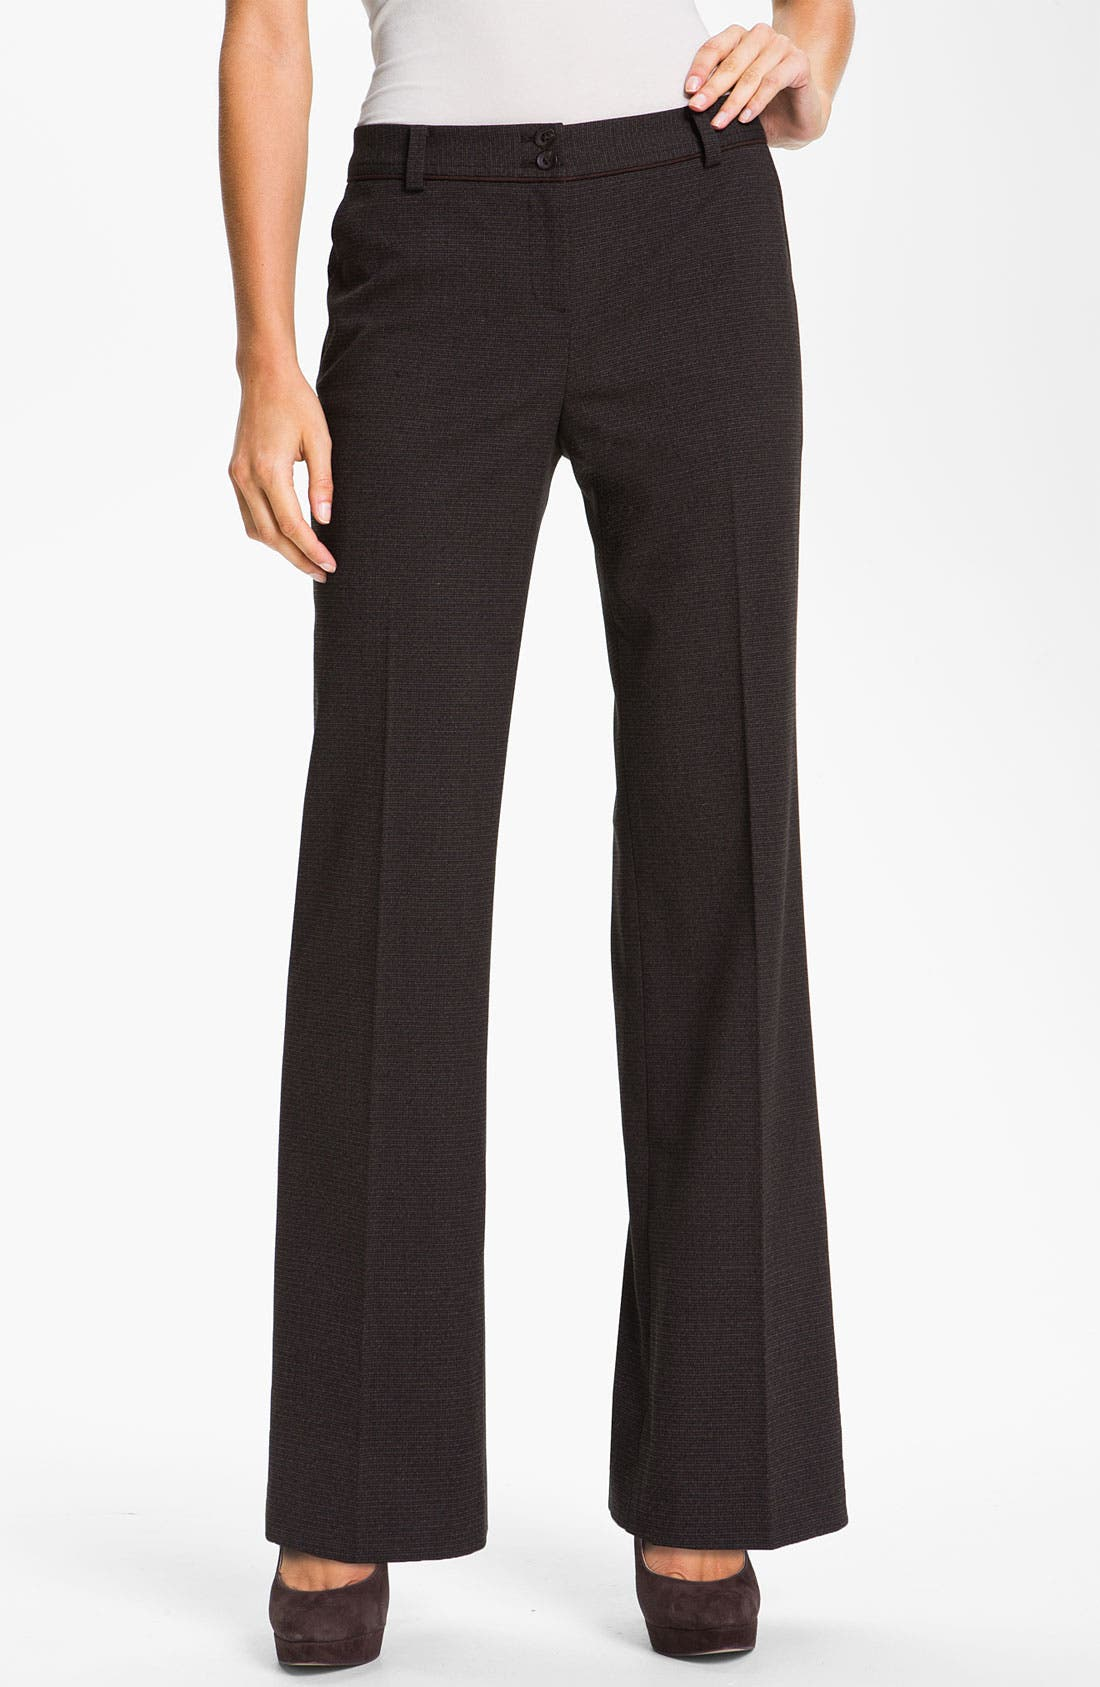 Alternate Image 1 Selected - Halogen® 'Taylor' Cross Weave Curvy Fit Pants (Petite)